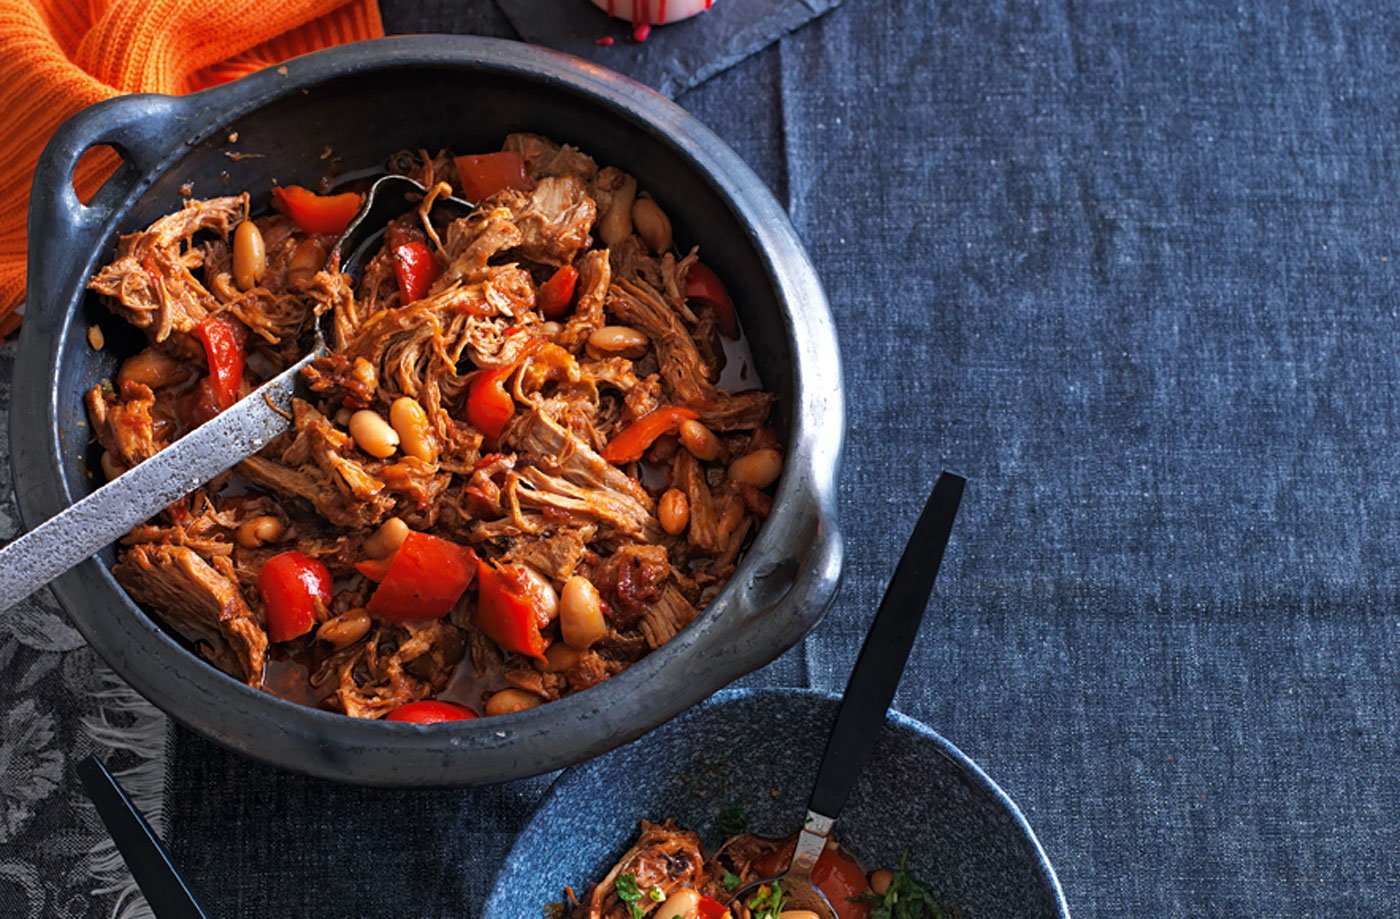 Smoky pulled pork stew with beans, peppers and orange gremolata recipe